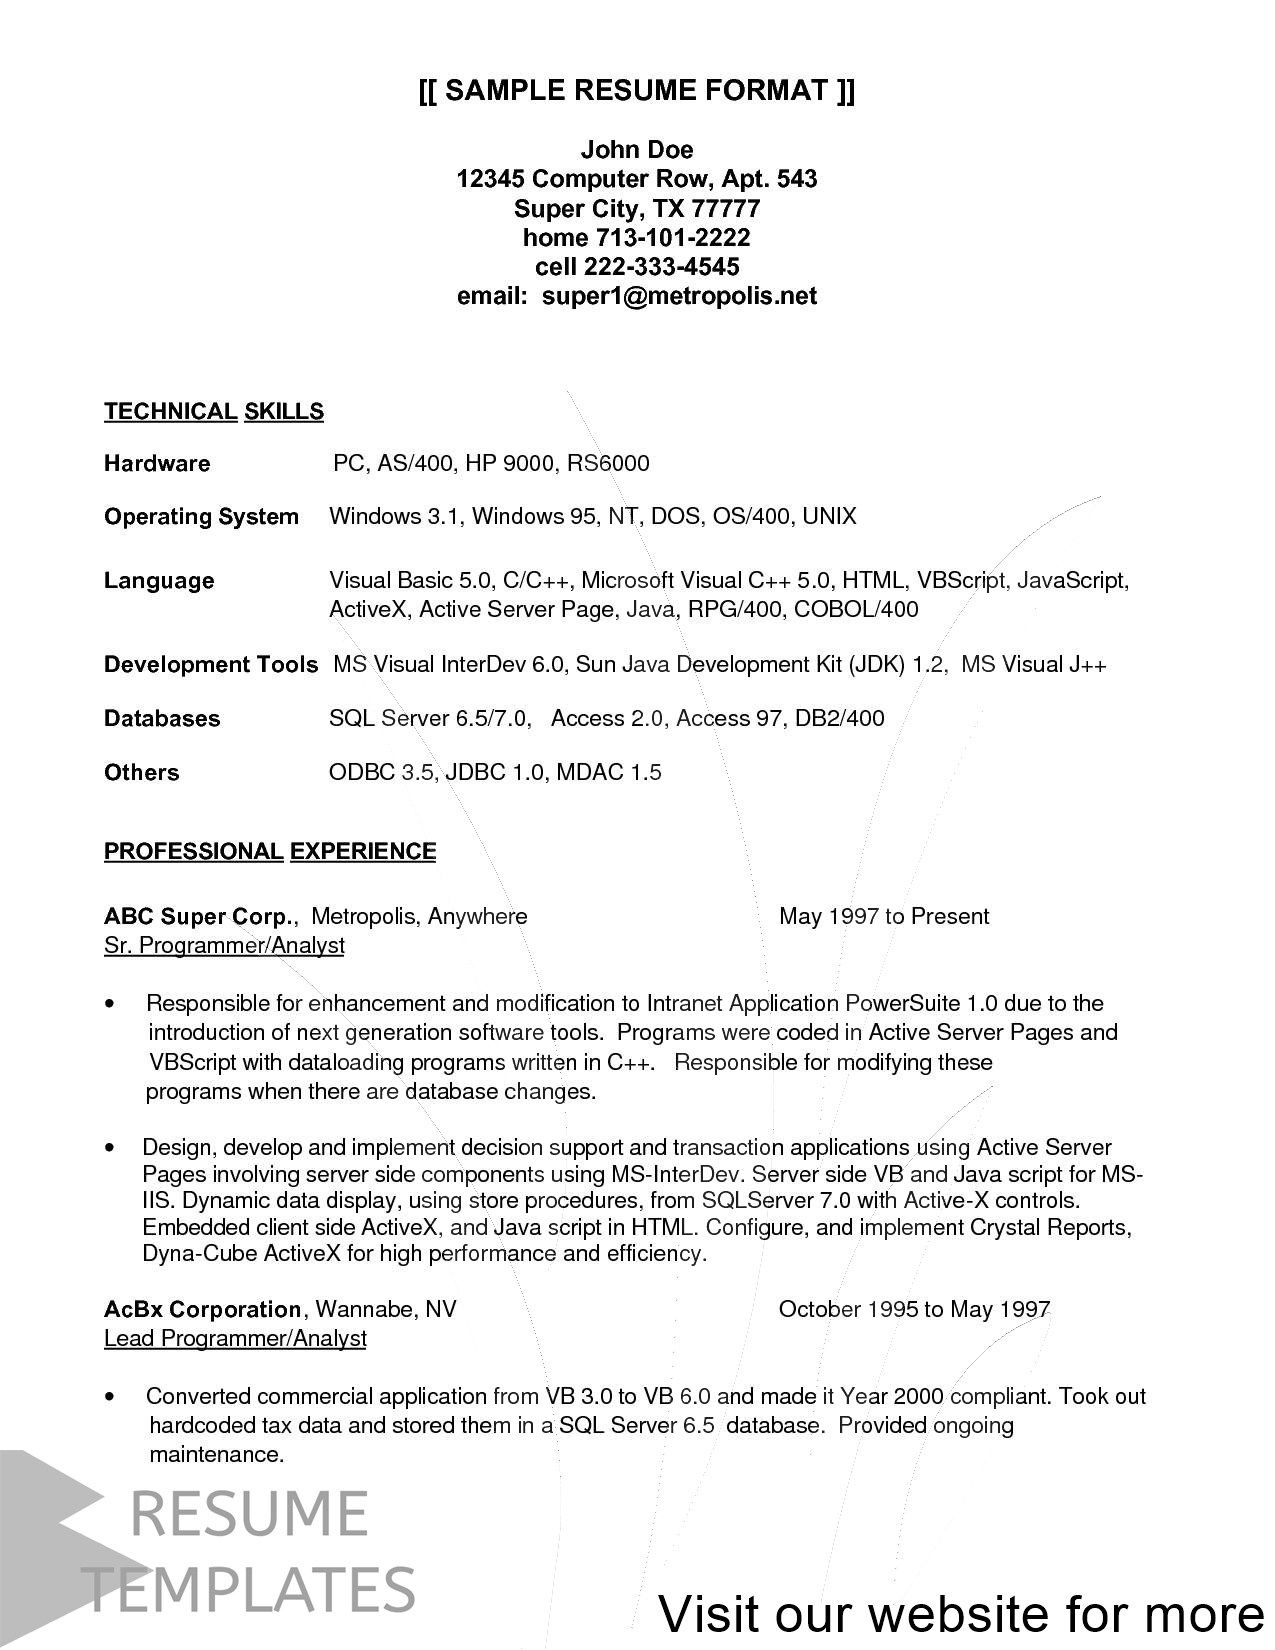 cover letter example finance in 2020 resume tips, job skills of a driver free reverse chronological template download sample format word document